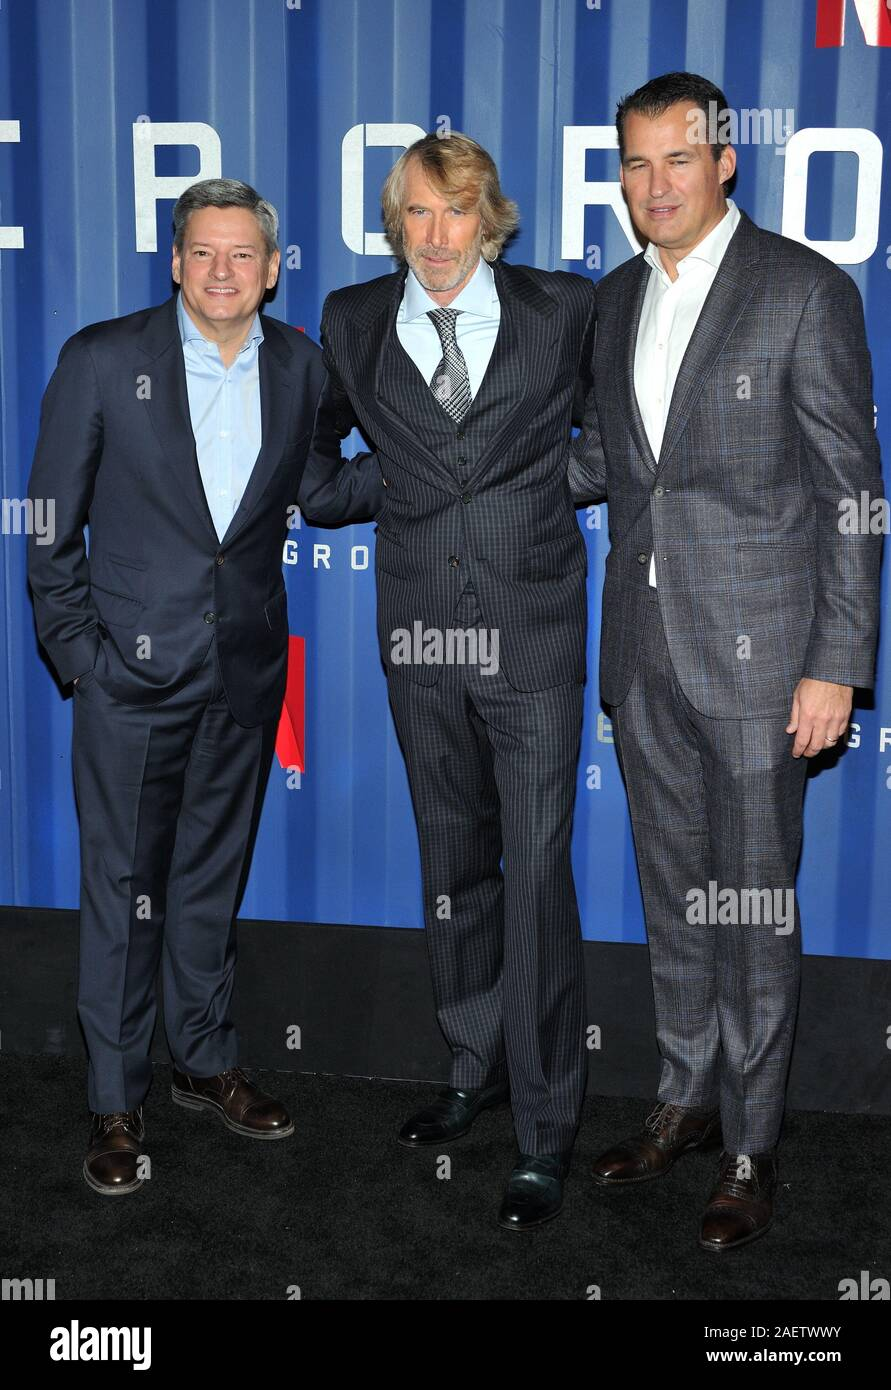 New York, USA. 10th Dec, 2019. L-R: Netflix exec Ted Sarandos, director Michael Bay and Netflix exec Scott Stuber attend the NY premiere of 6 Underground at The Shed at Hudson Yards in New York, NY on December 10, 2019. (Photo by Stephen Smith/SIPA USA) Credit: Sipa USA/Alamy Live News Stock Photo